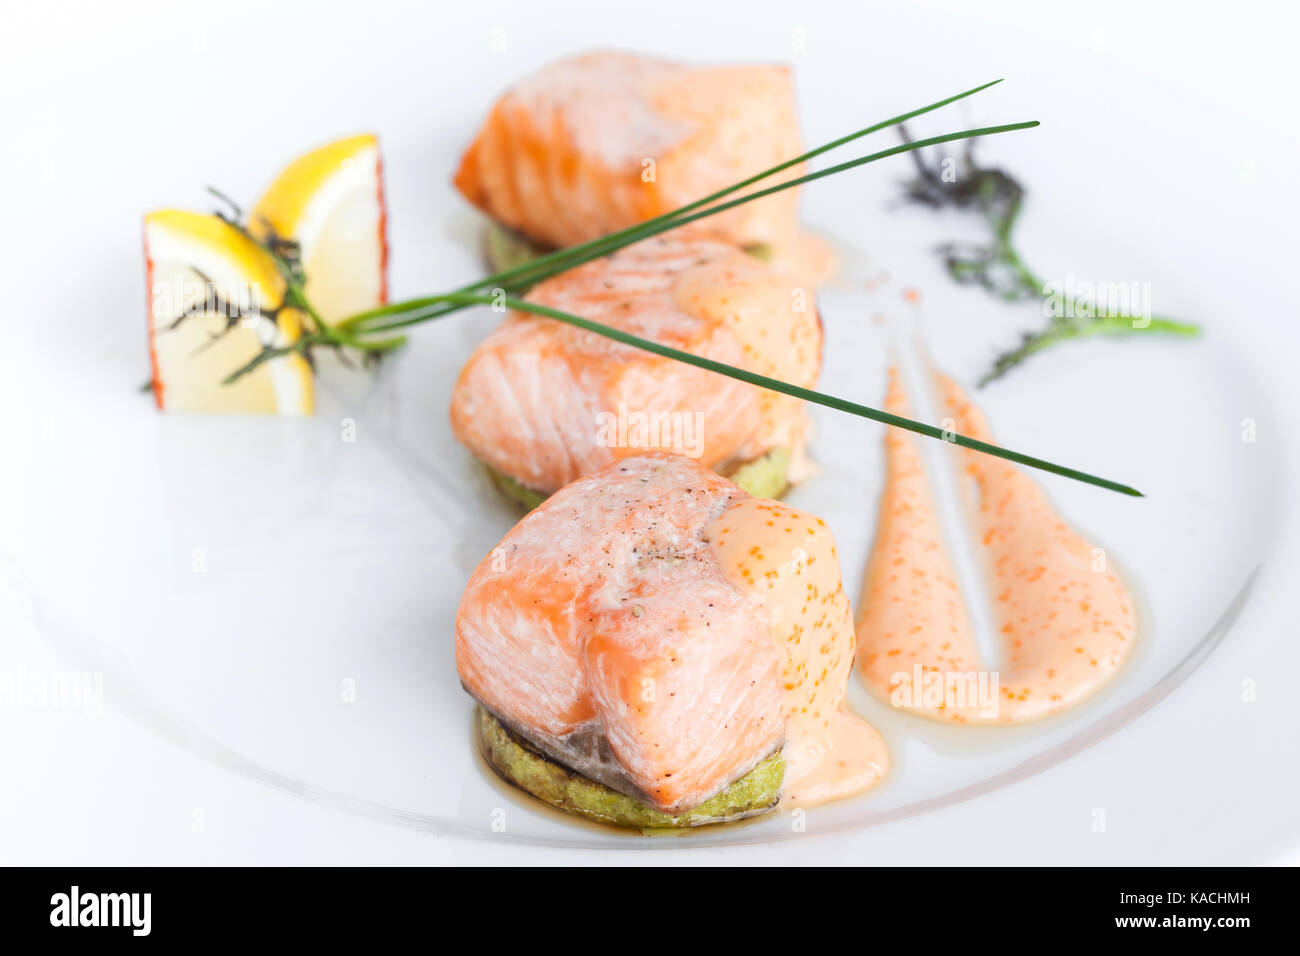 how to cook salmon slices